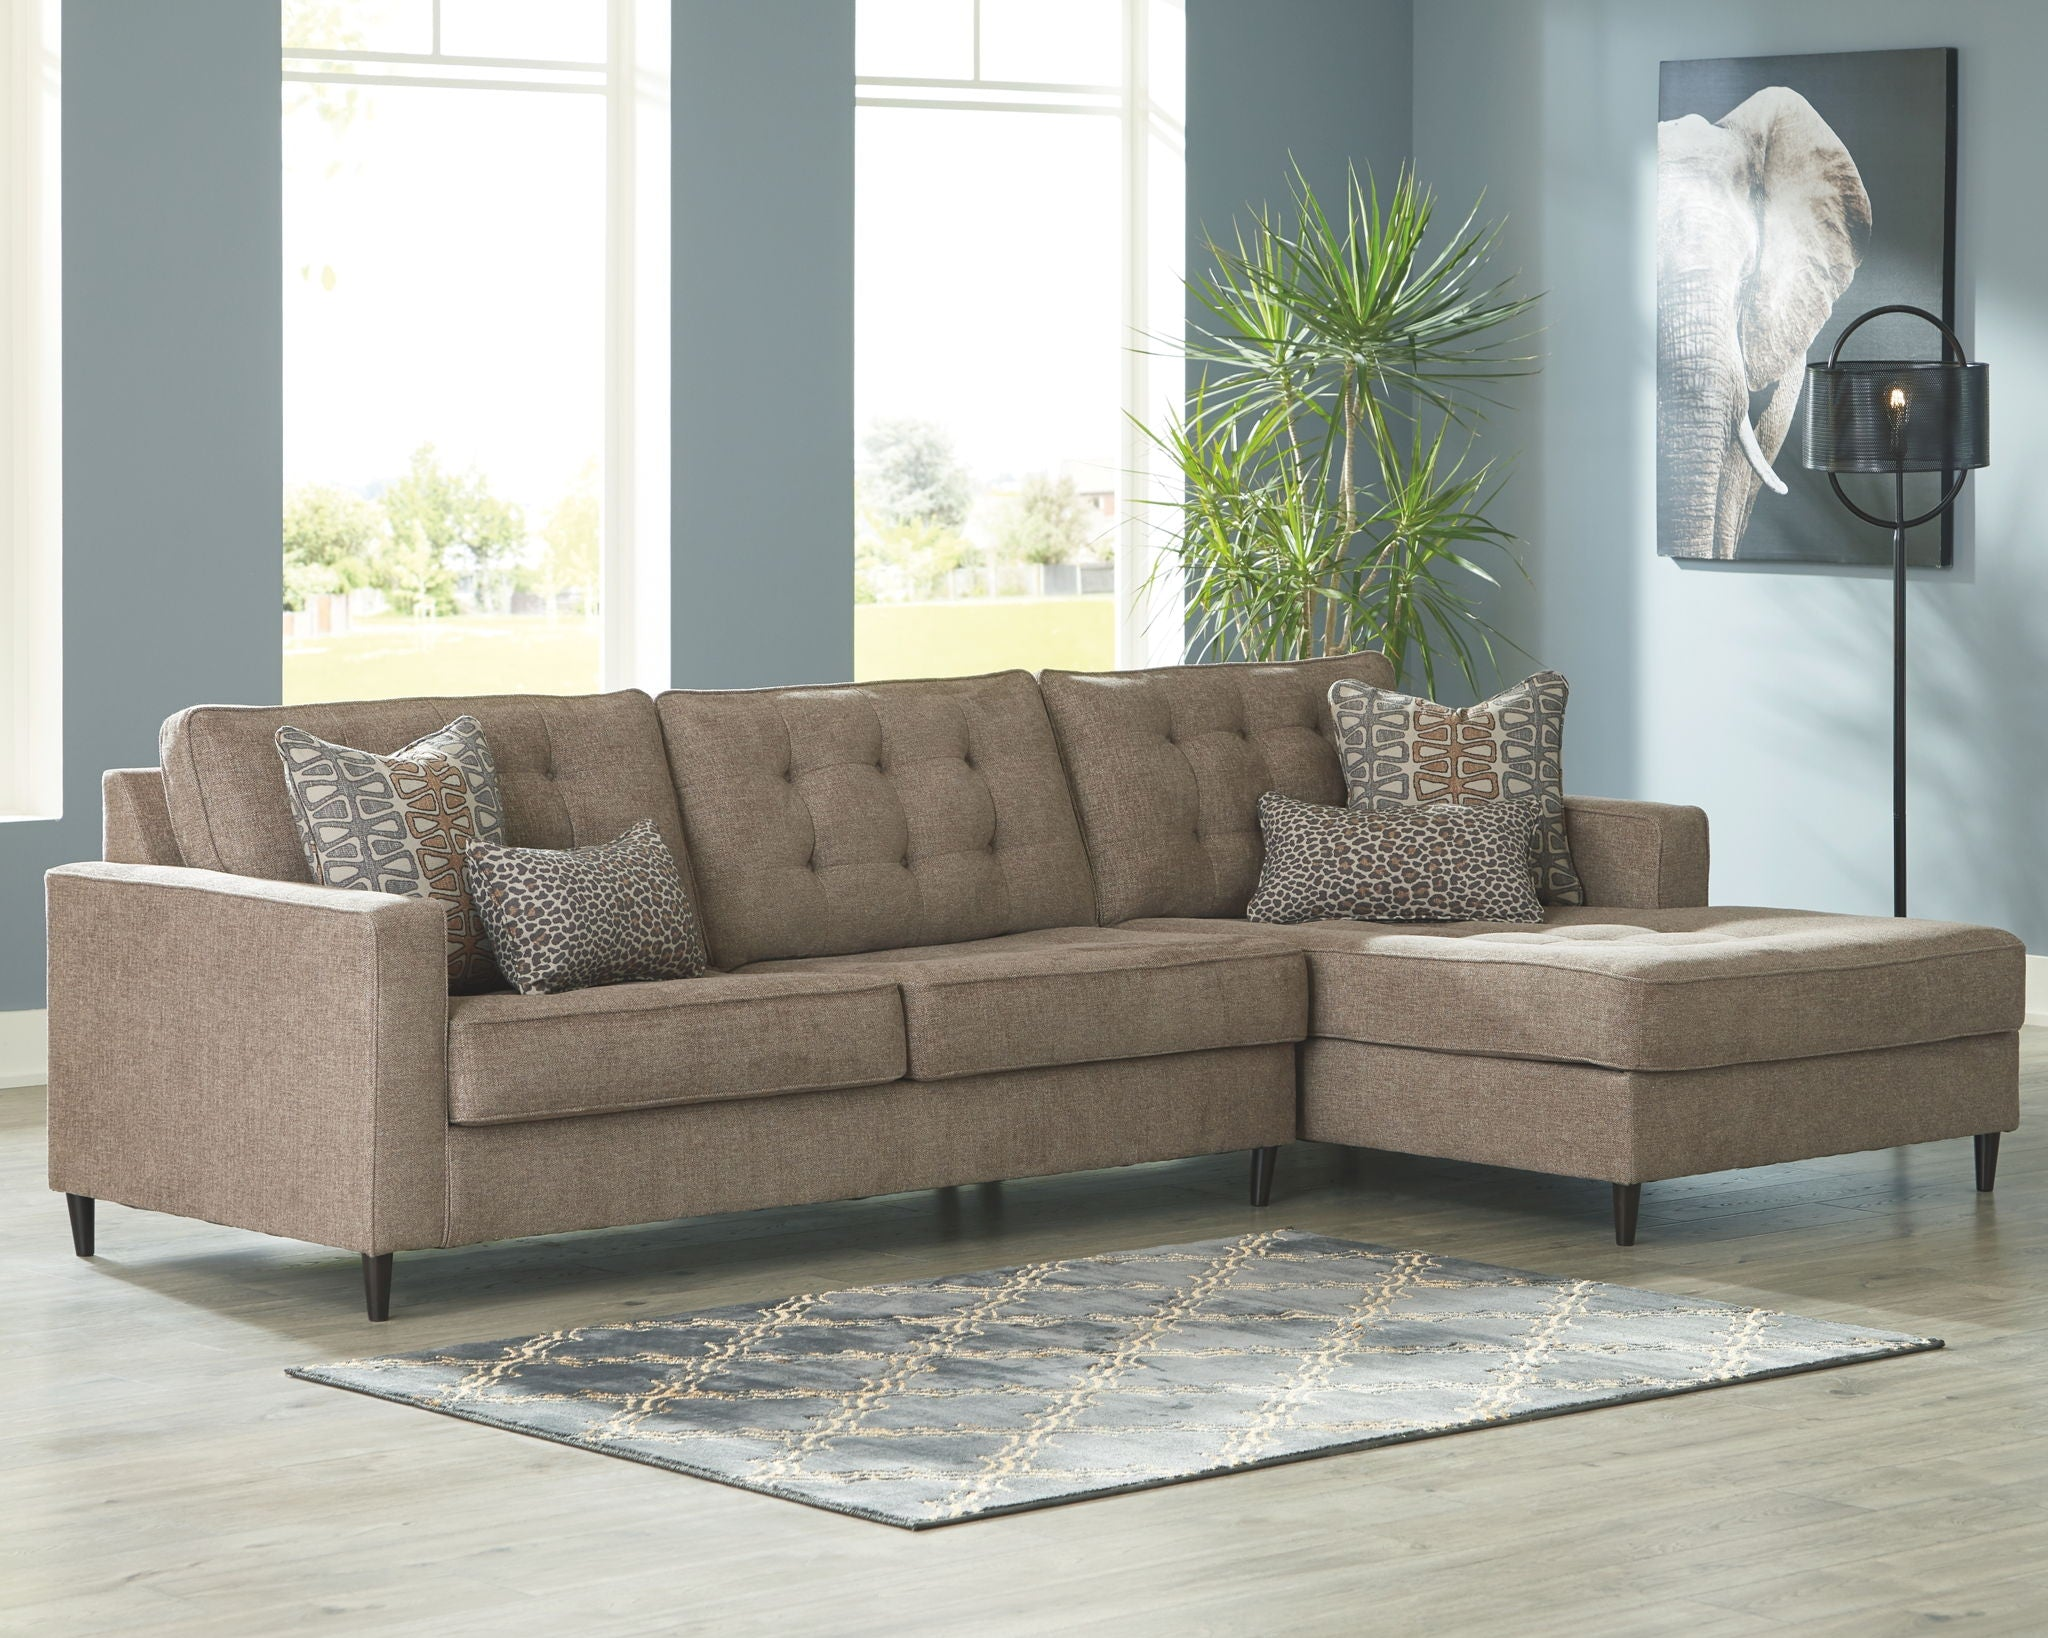 Flintshire Sectional with Chaise